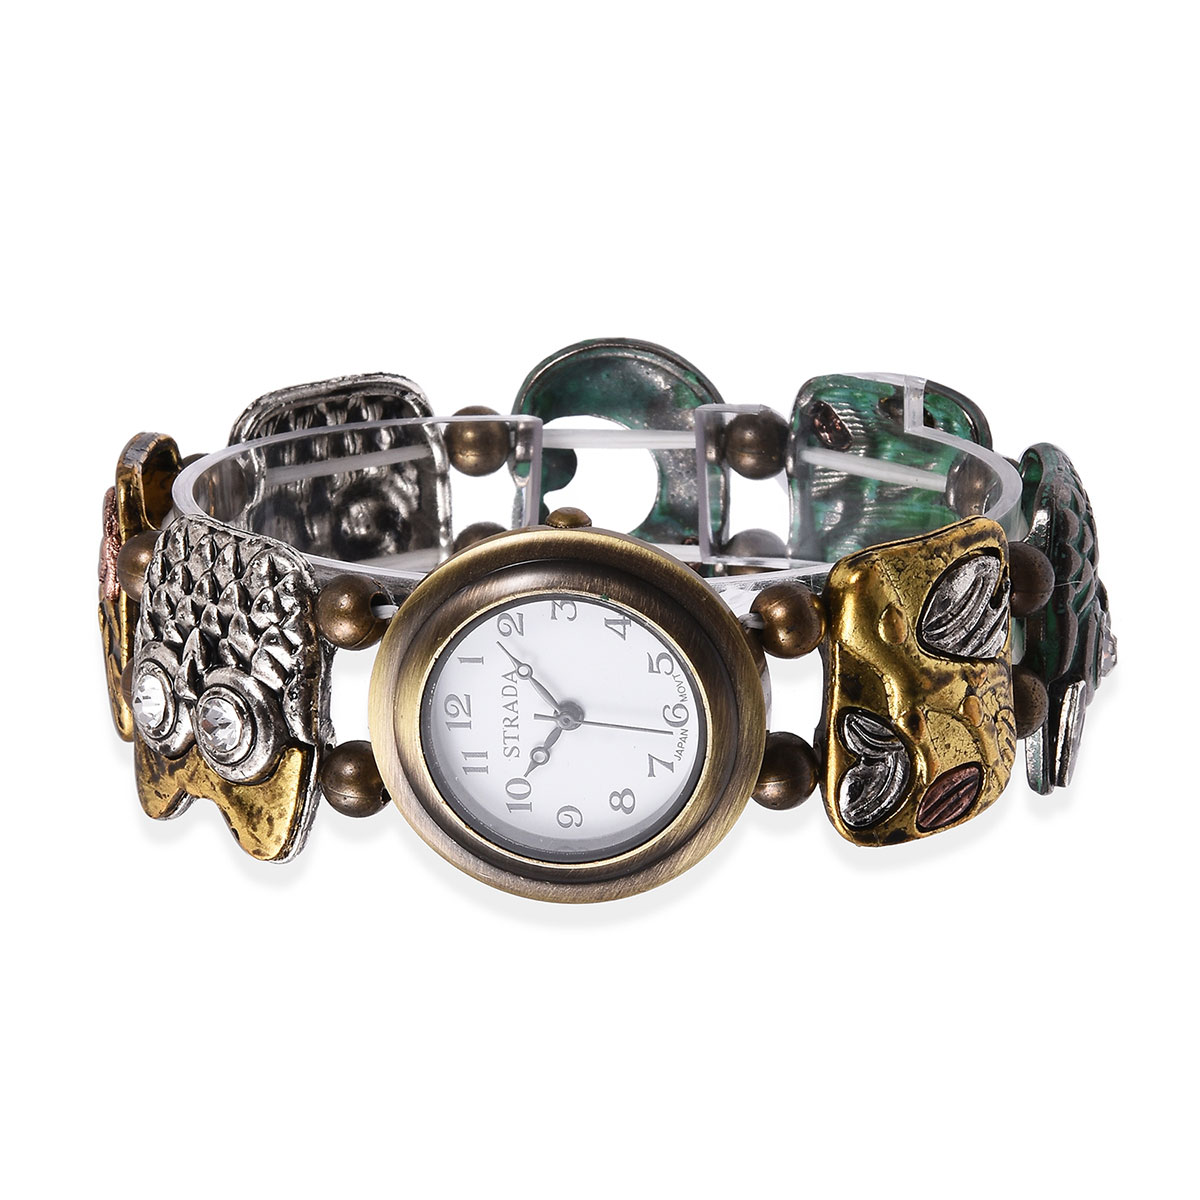 f2a0d87f7 ... STRADA Austrian Crystal Japanese Movement Water Resistant Enameled  Bracelet Watch (Stretchable) in Multitone and ...